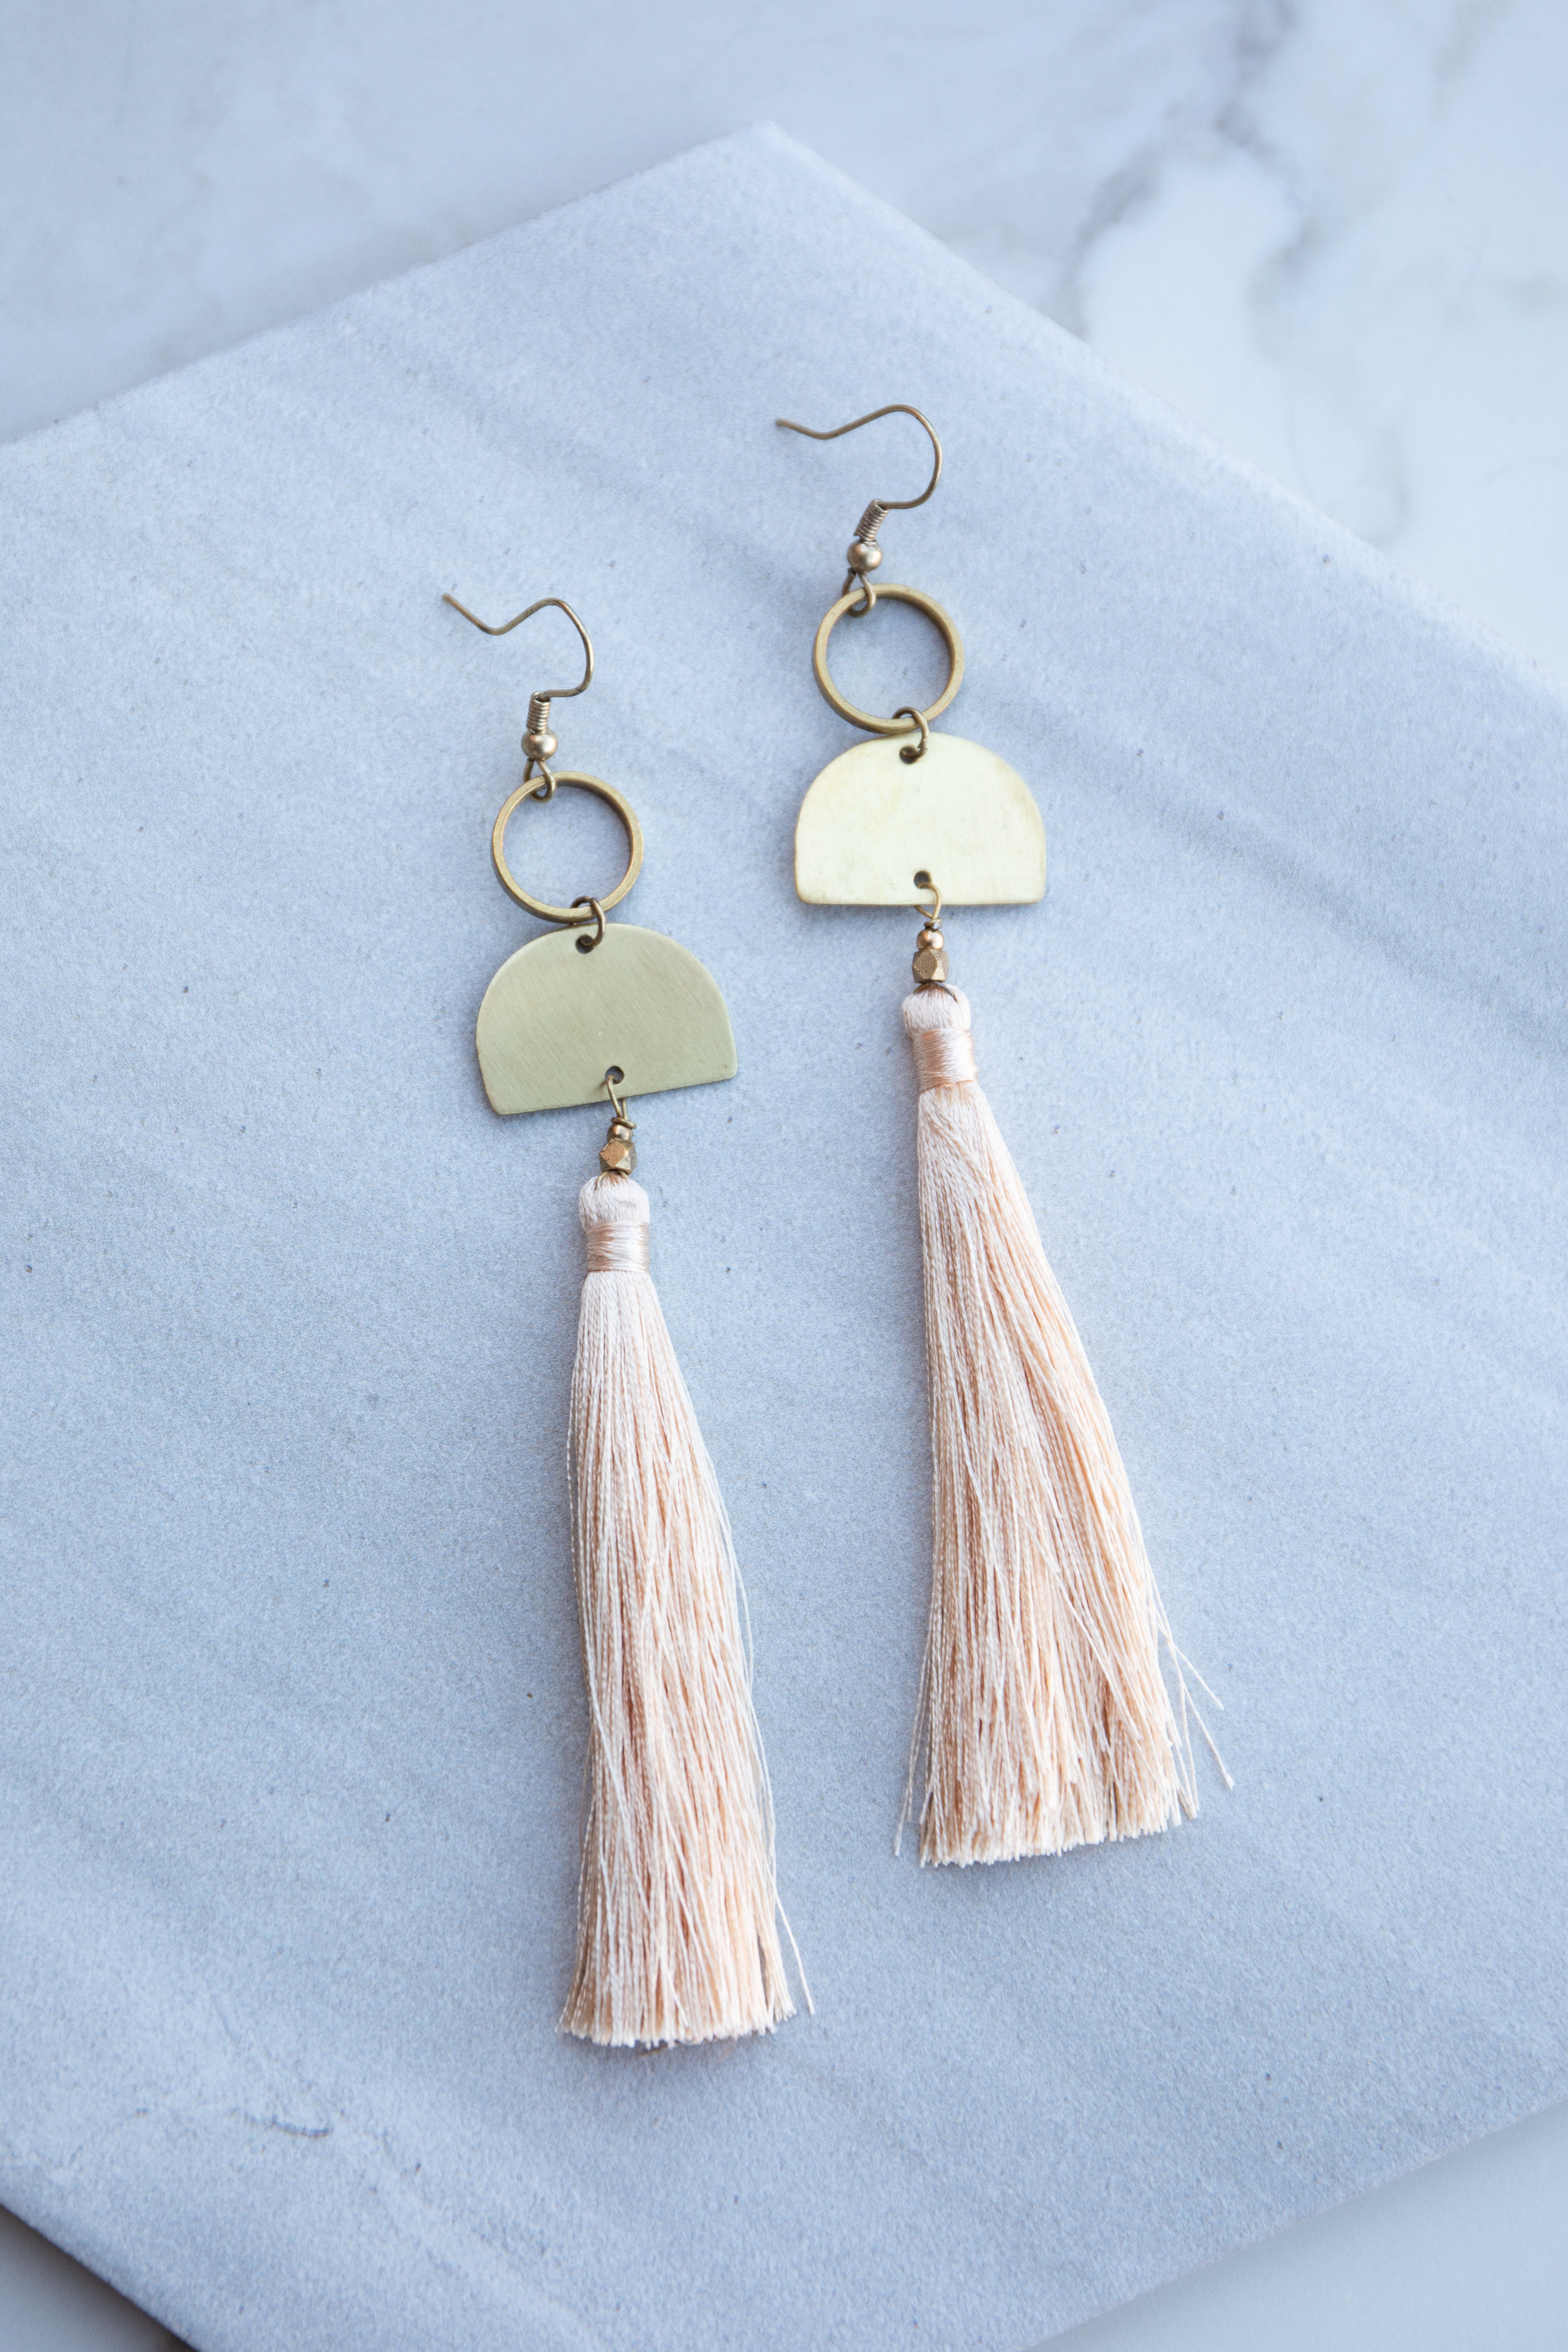 Gold Circle and Half Circle Dangle Earrings with Tassel